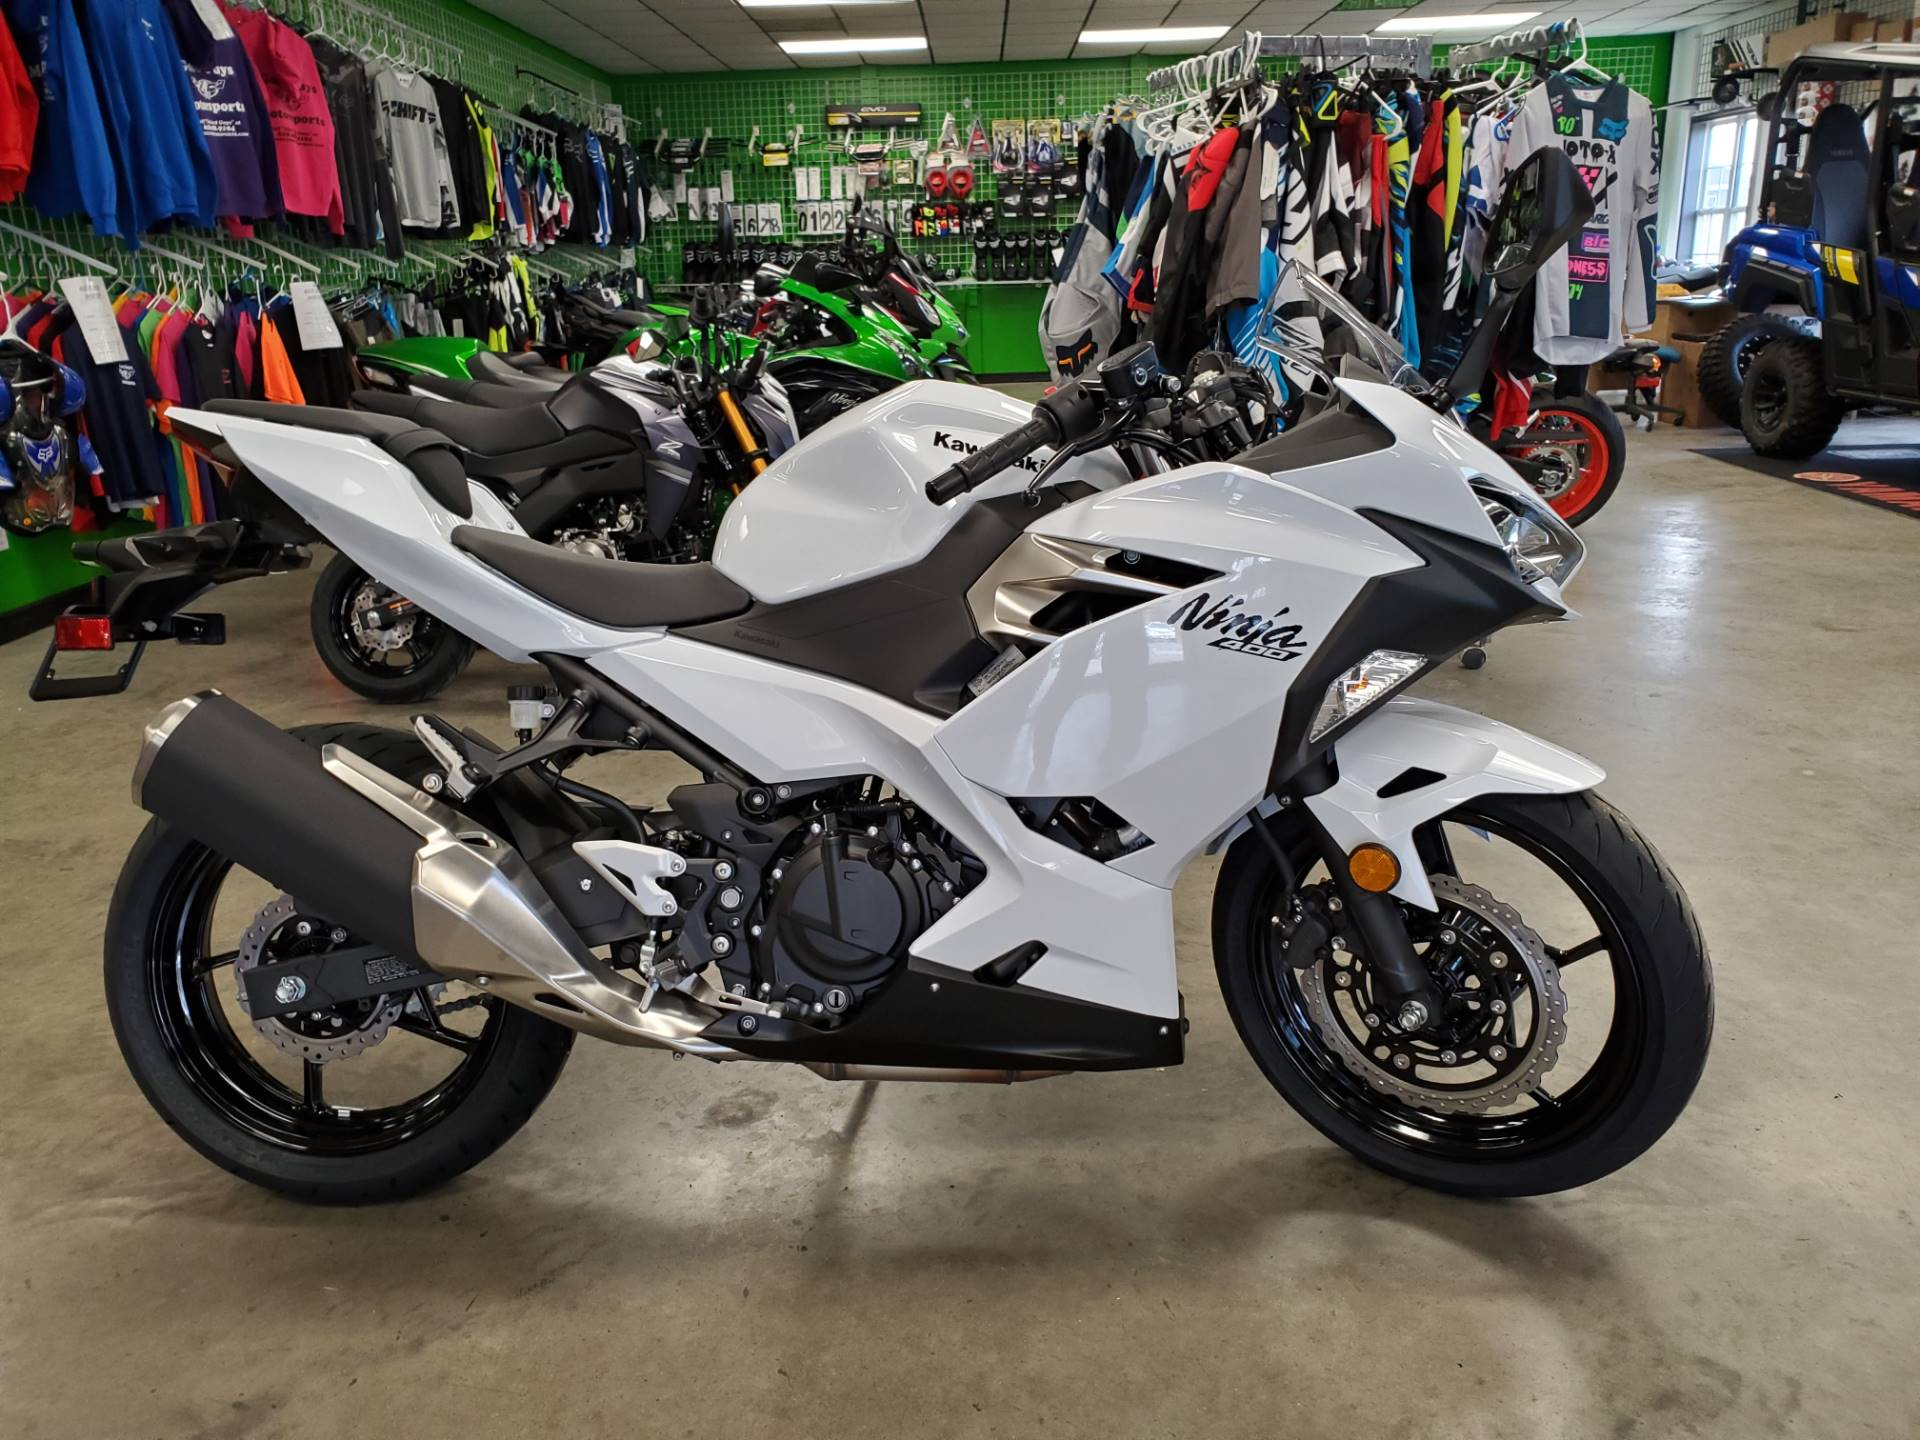 2020 Kawasaki Ninja 400 in Herrin, Illinois - Photo 3